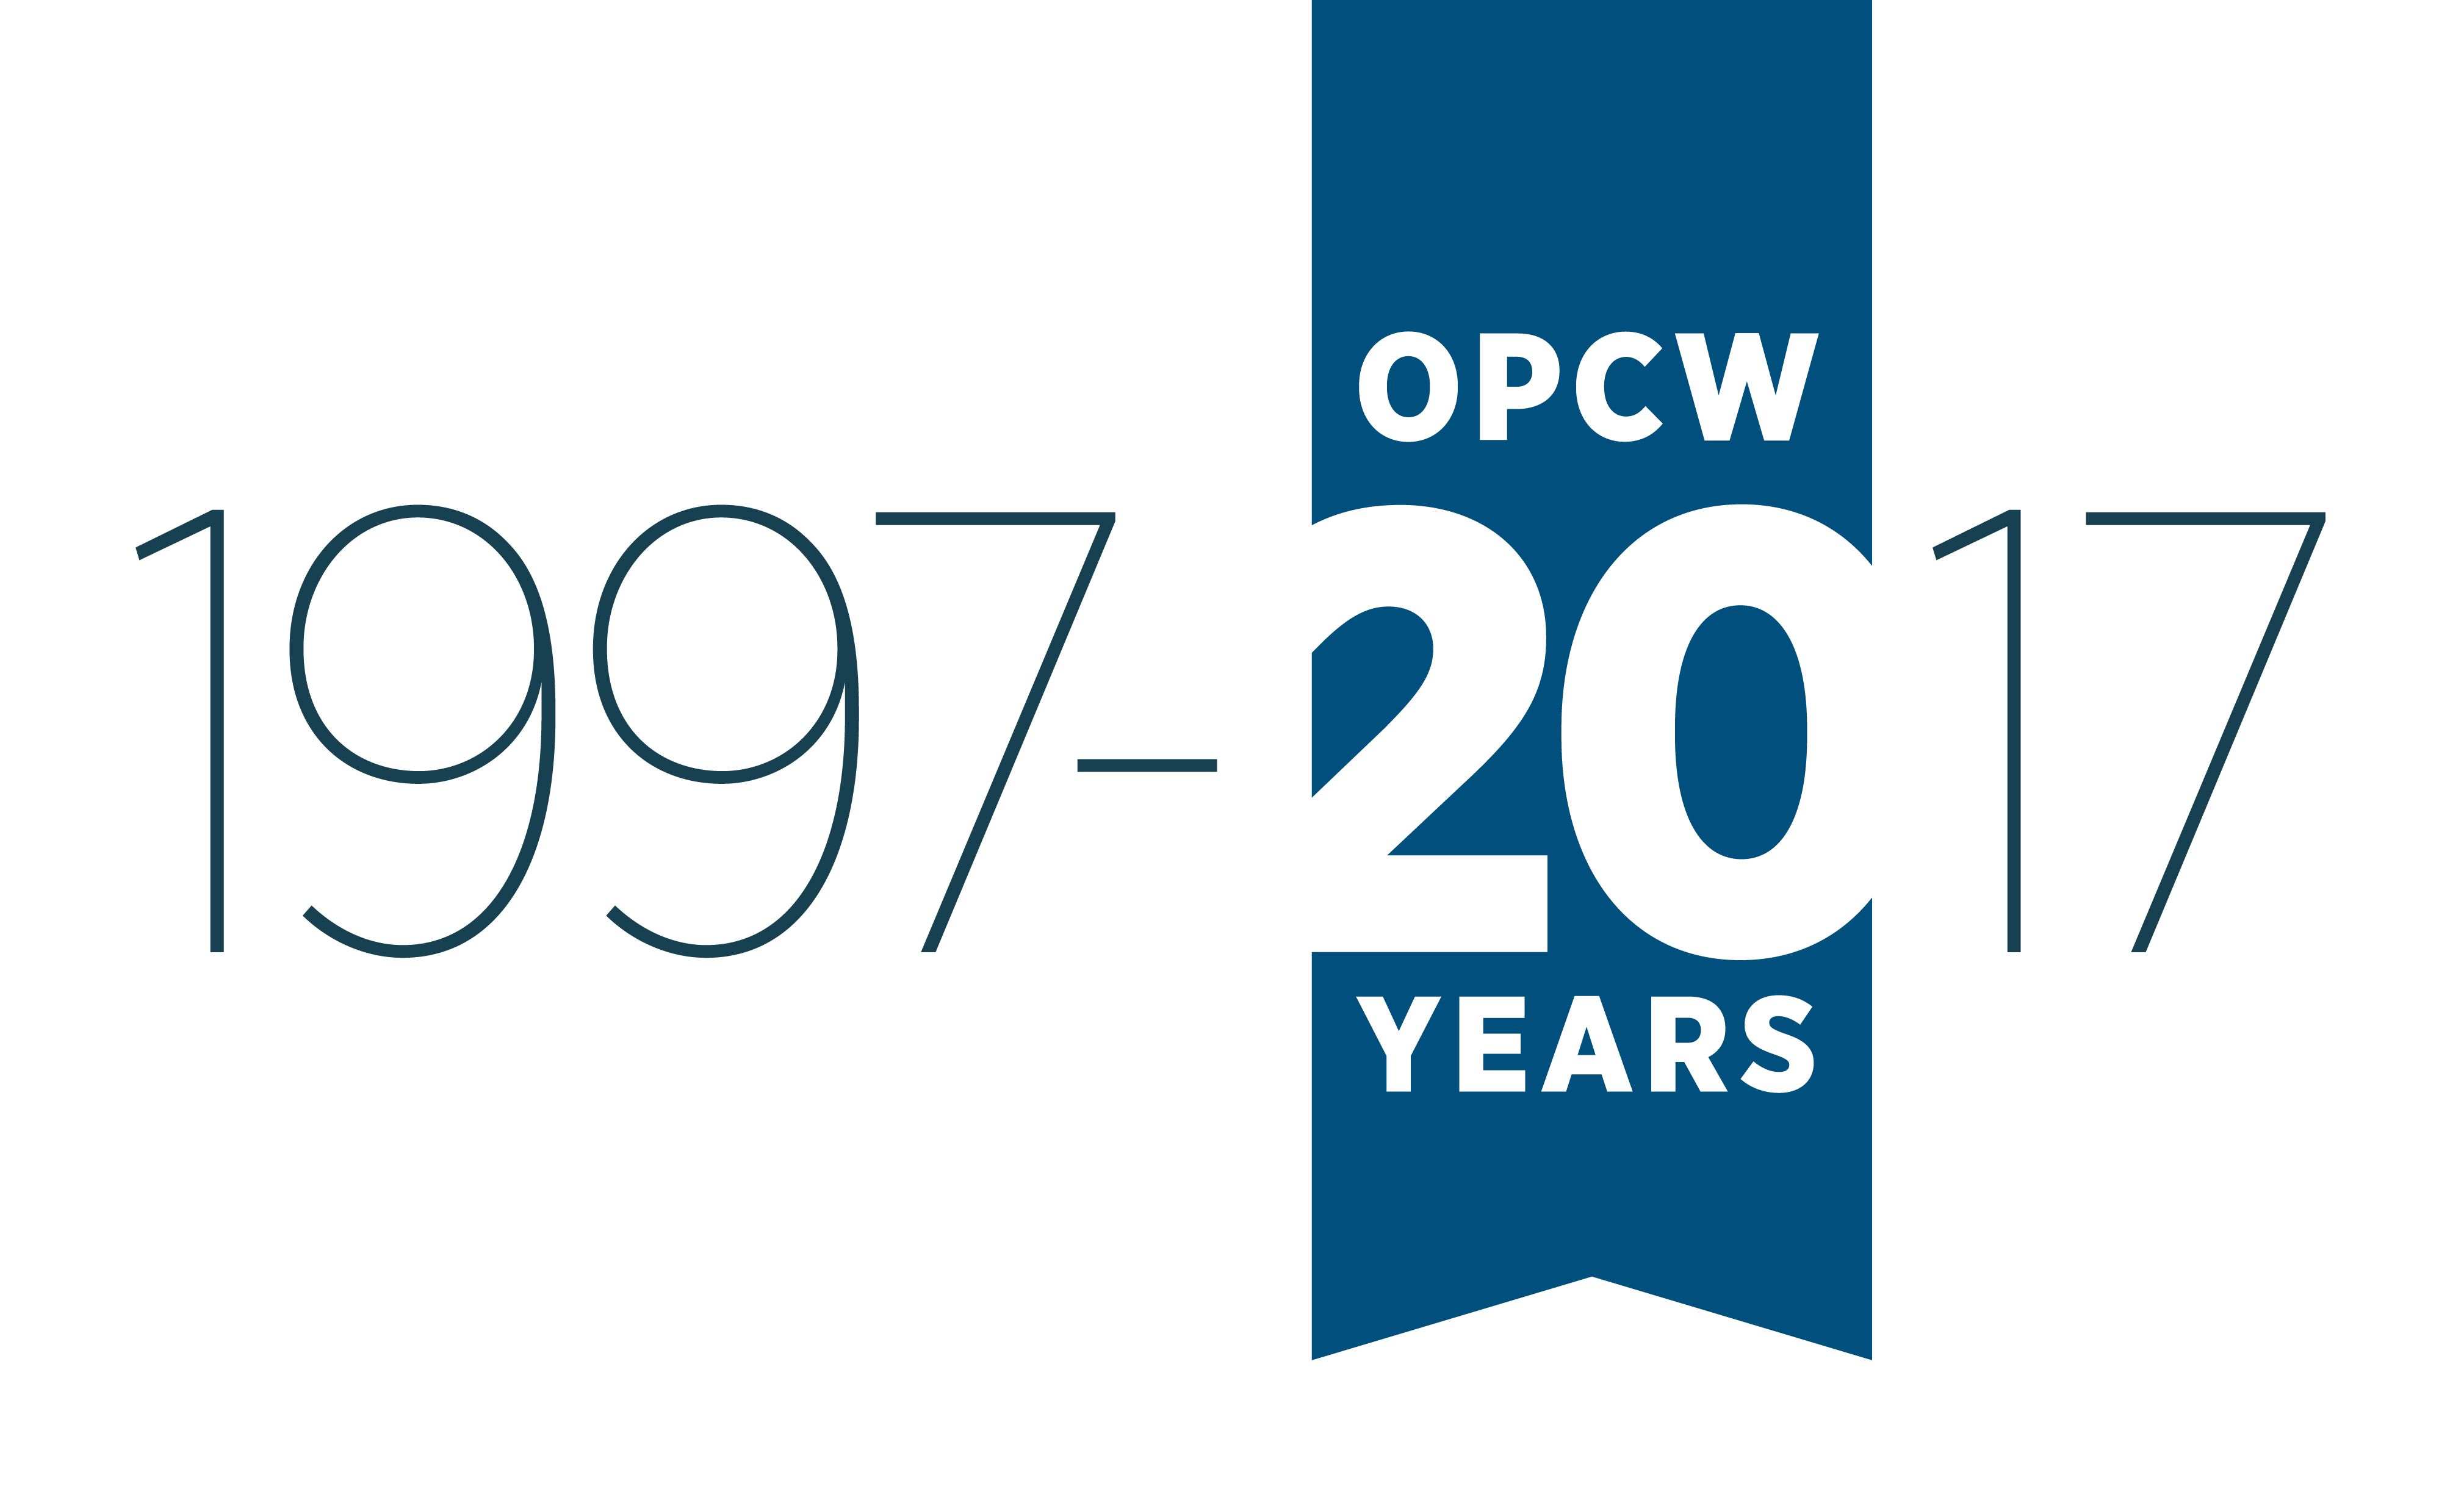 OPCW-20th-Mark_ribbon_opcw.png